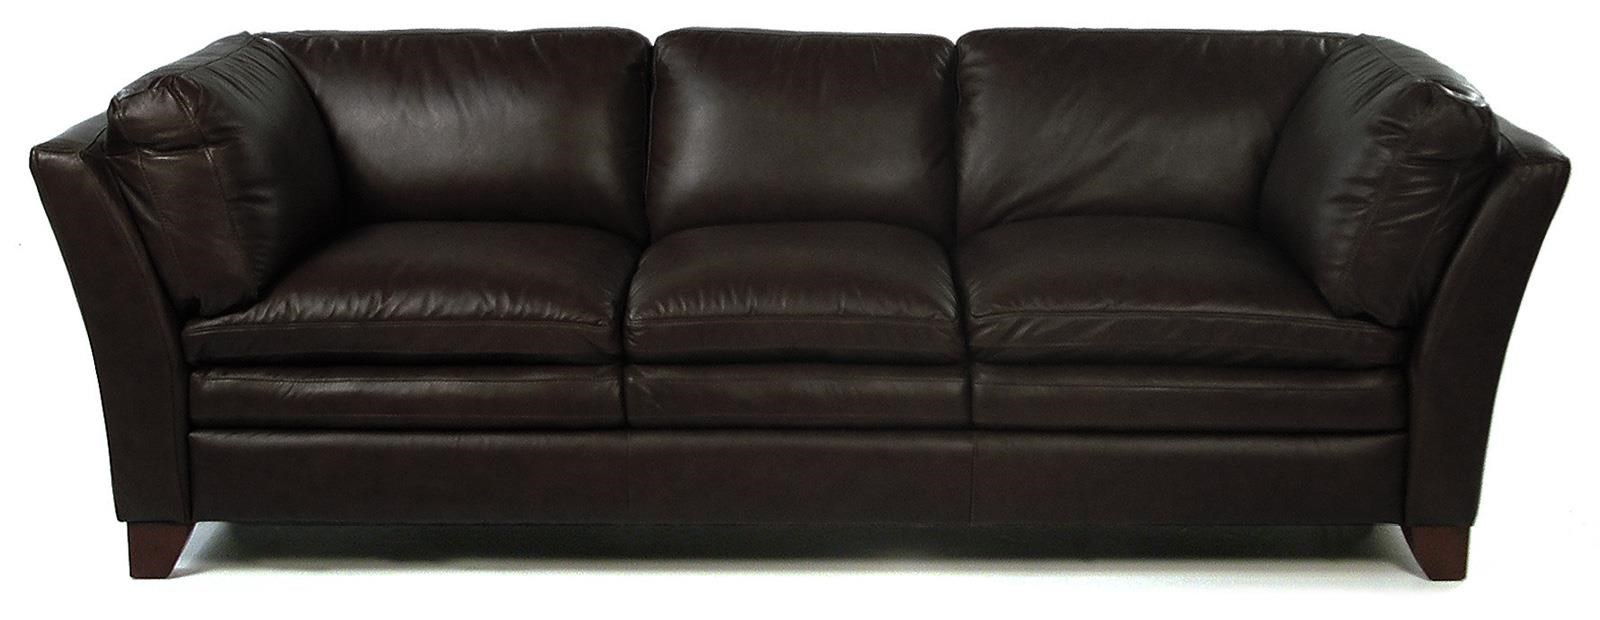 Loft Leather Pacific Sofa - Item Number: 7203-30